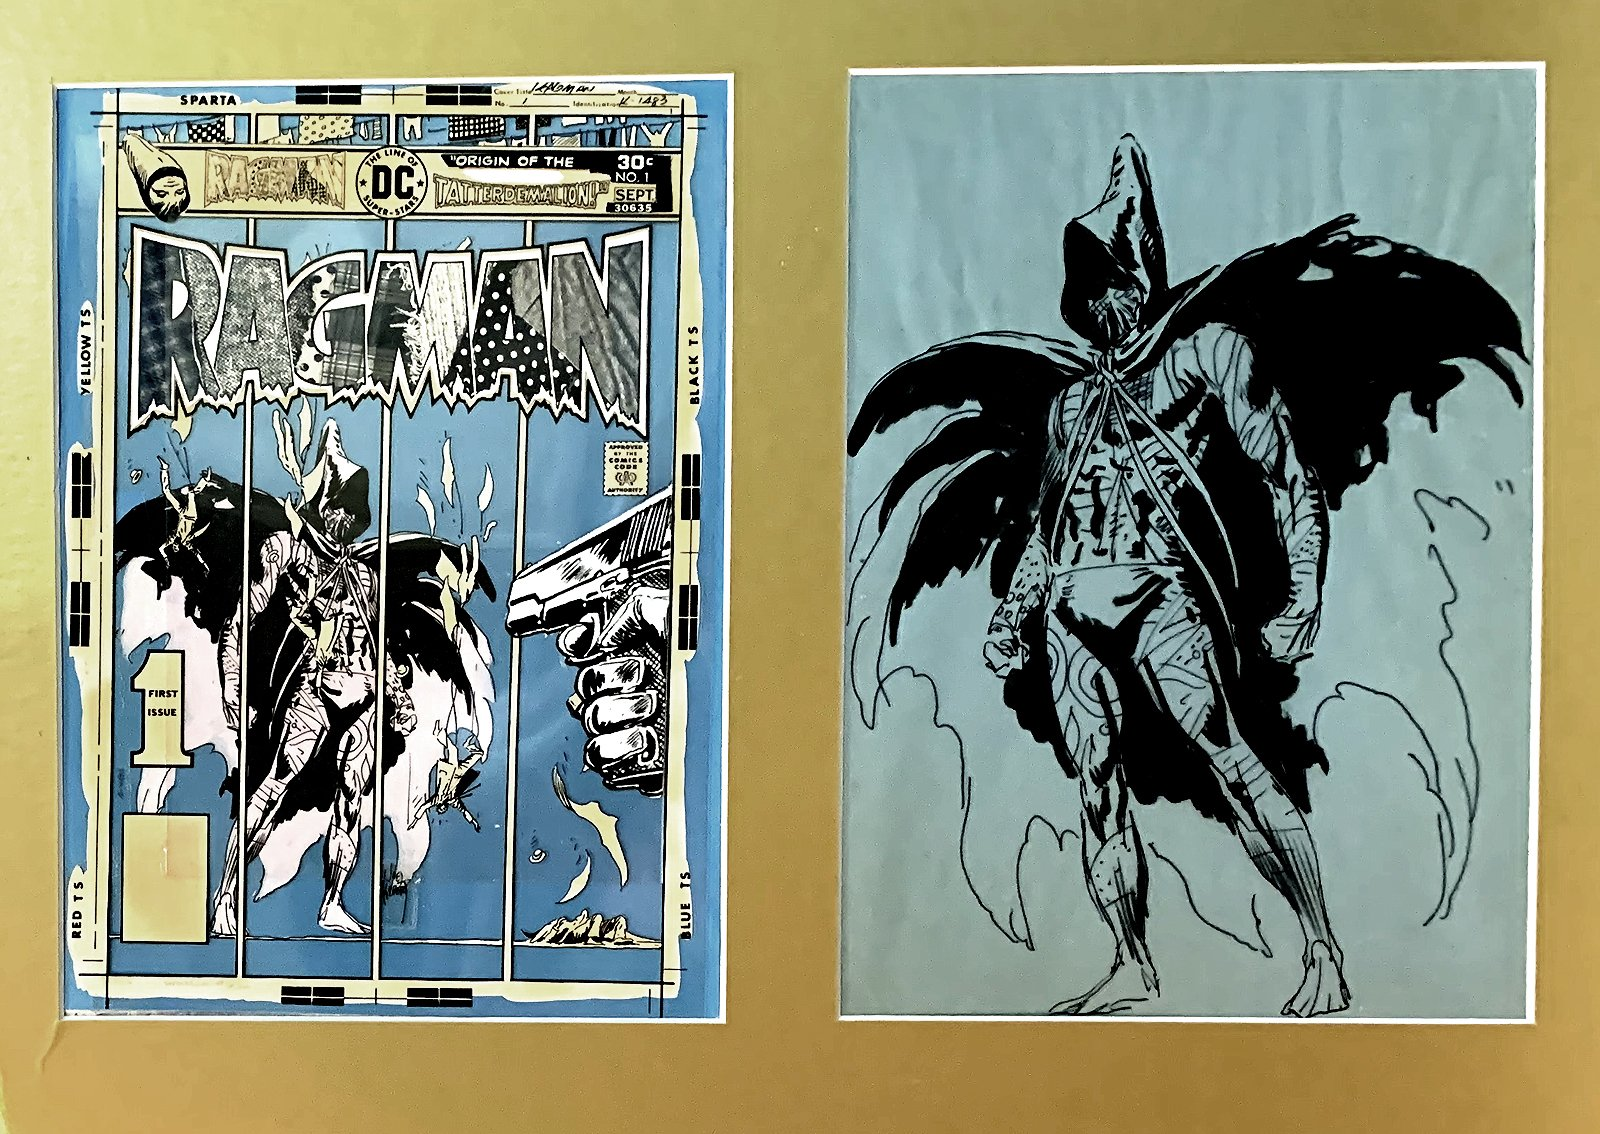 Ragman #1 Unpublished Cover Art With Actual Ragman #1 Cover Acetate Color Separations Created From This Art (1976)